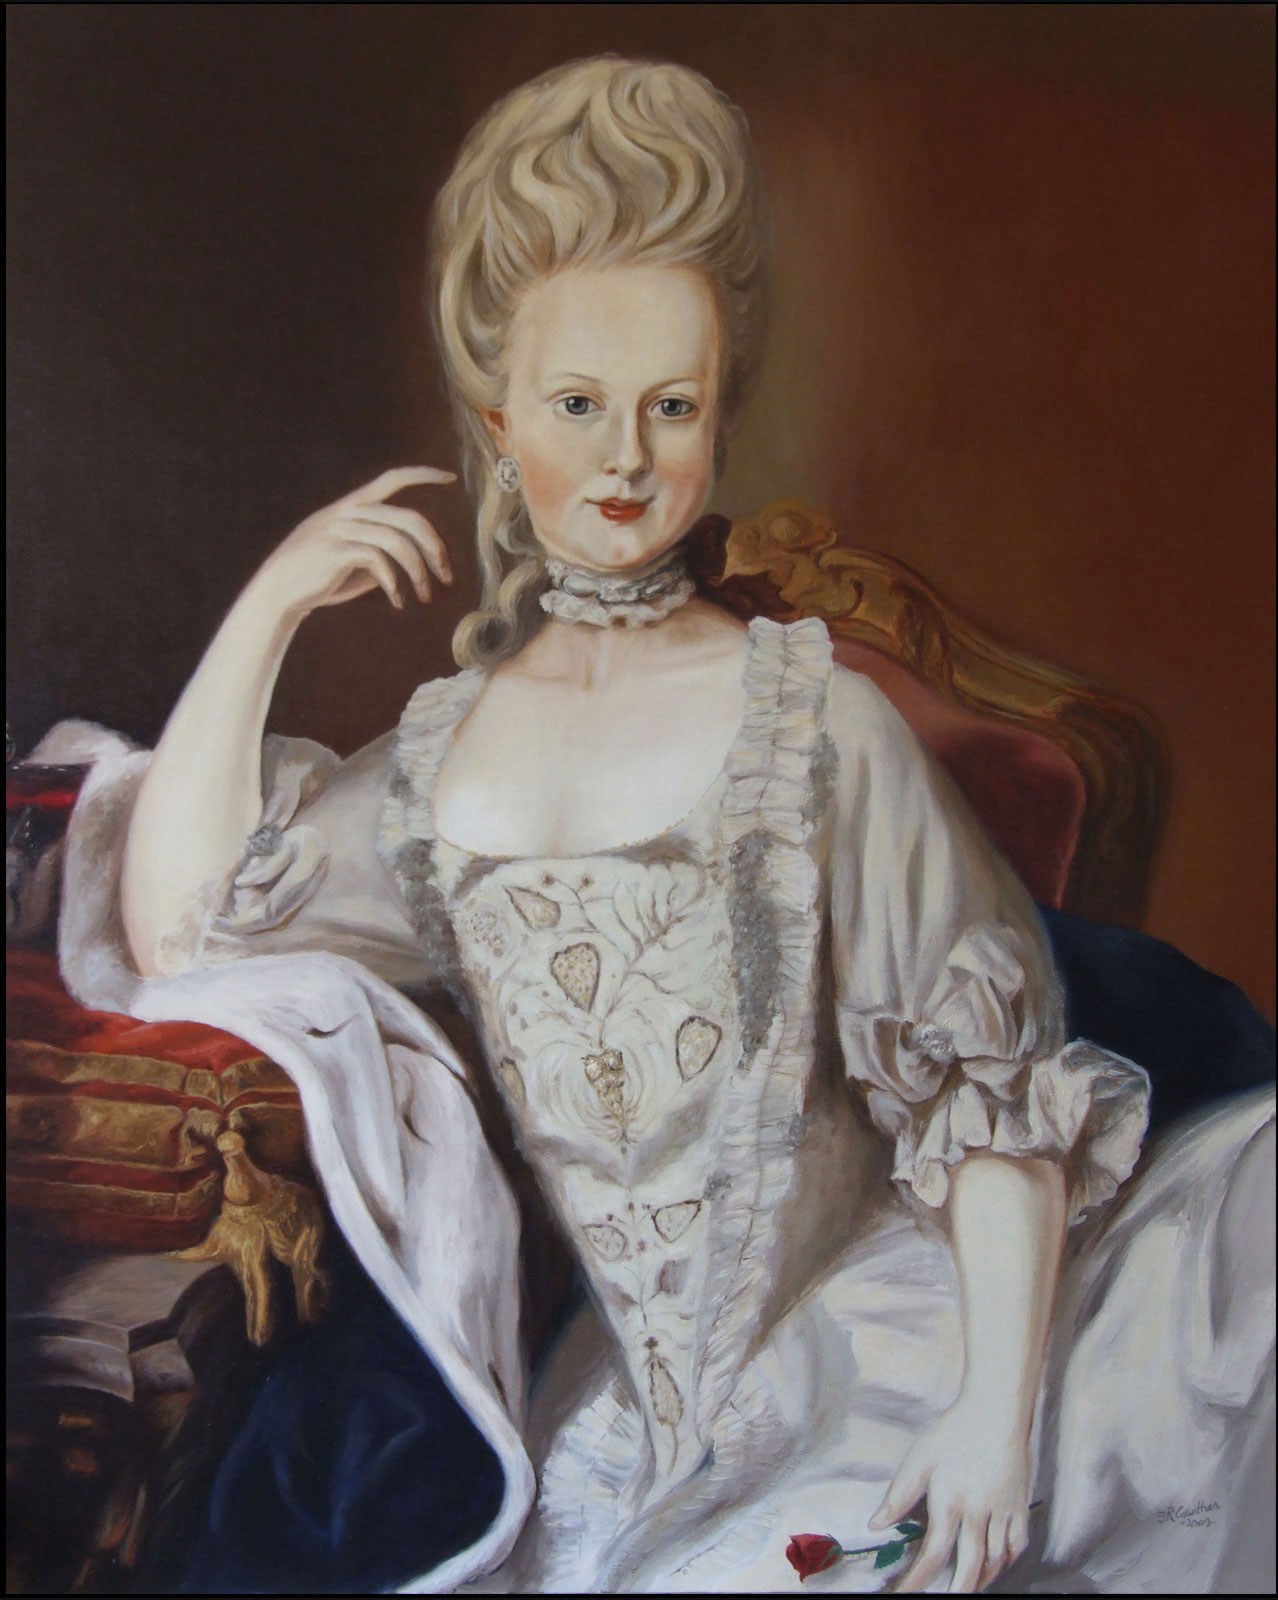 Marie Antoinette portrait oil on canvas